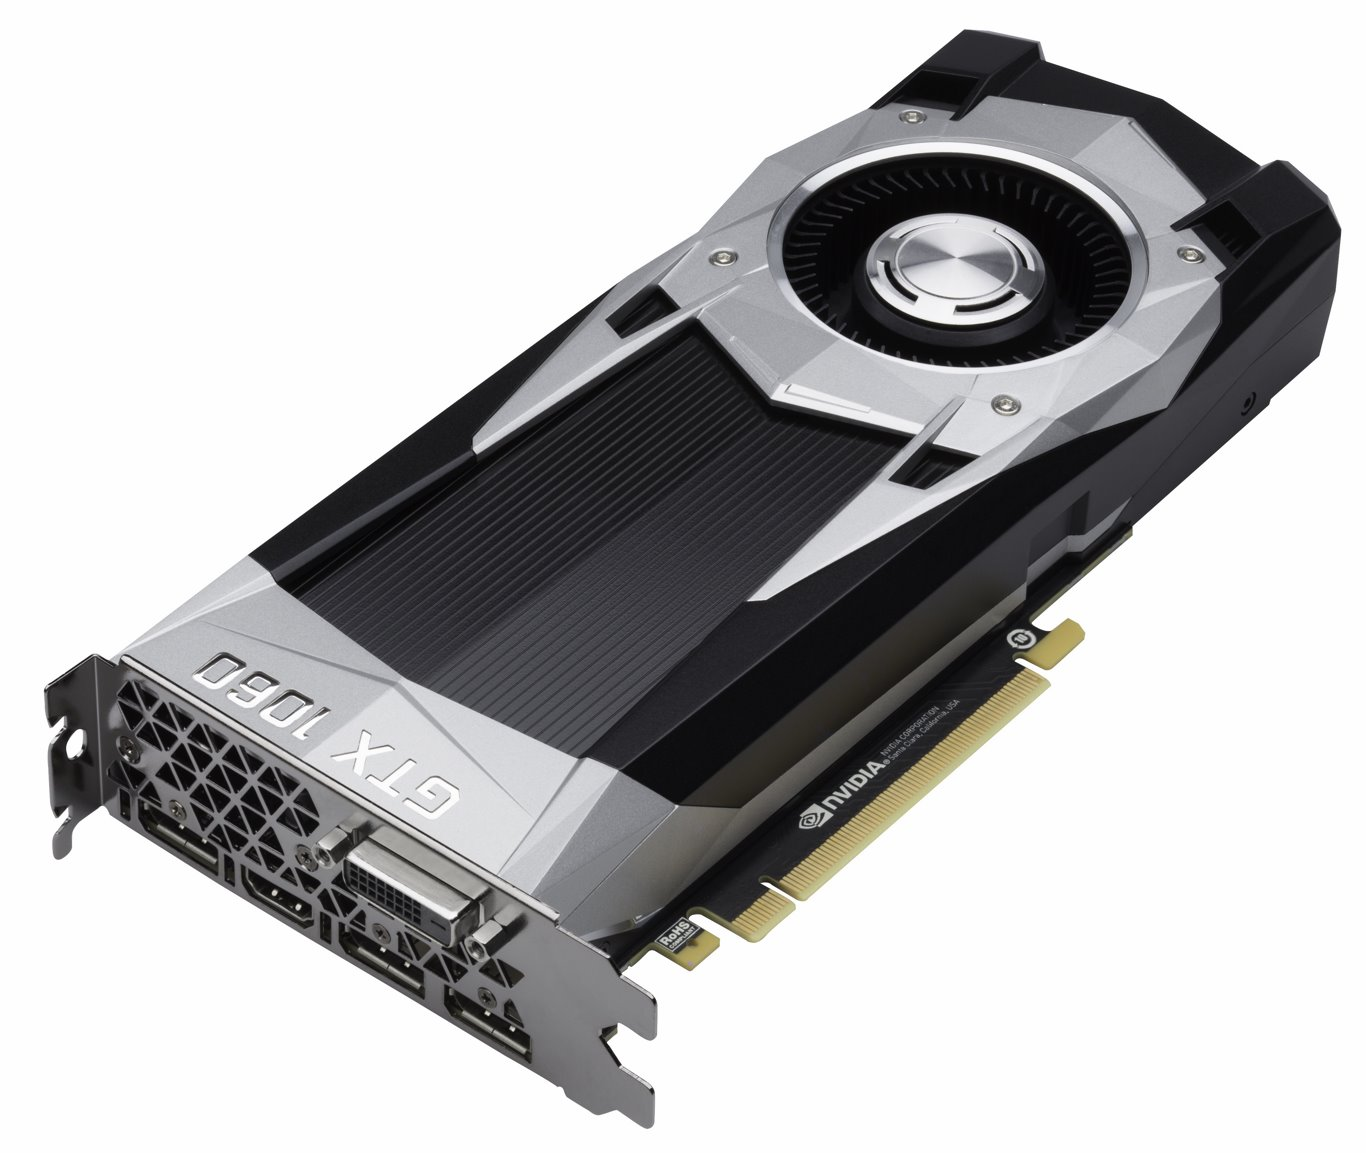 NVIDIA GeForce GTX 1060 Review: Pascal Value And Performance Per Watt